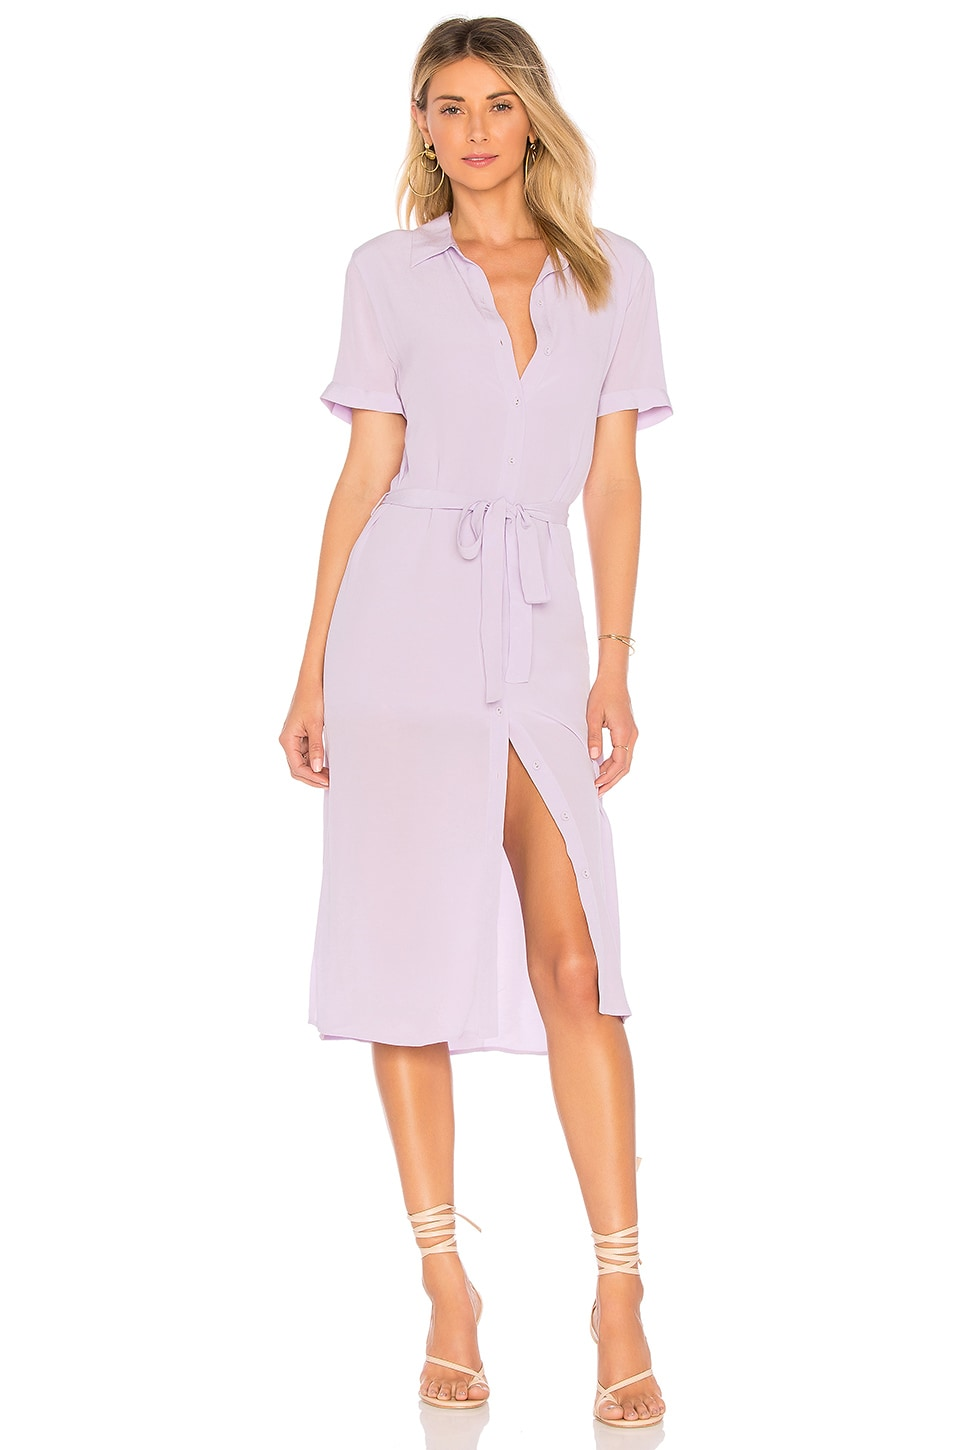 L'Academie The Shirt Dress in Lilac